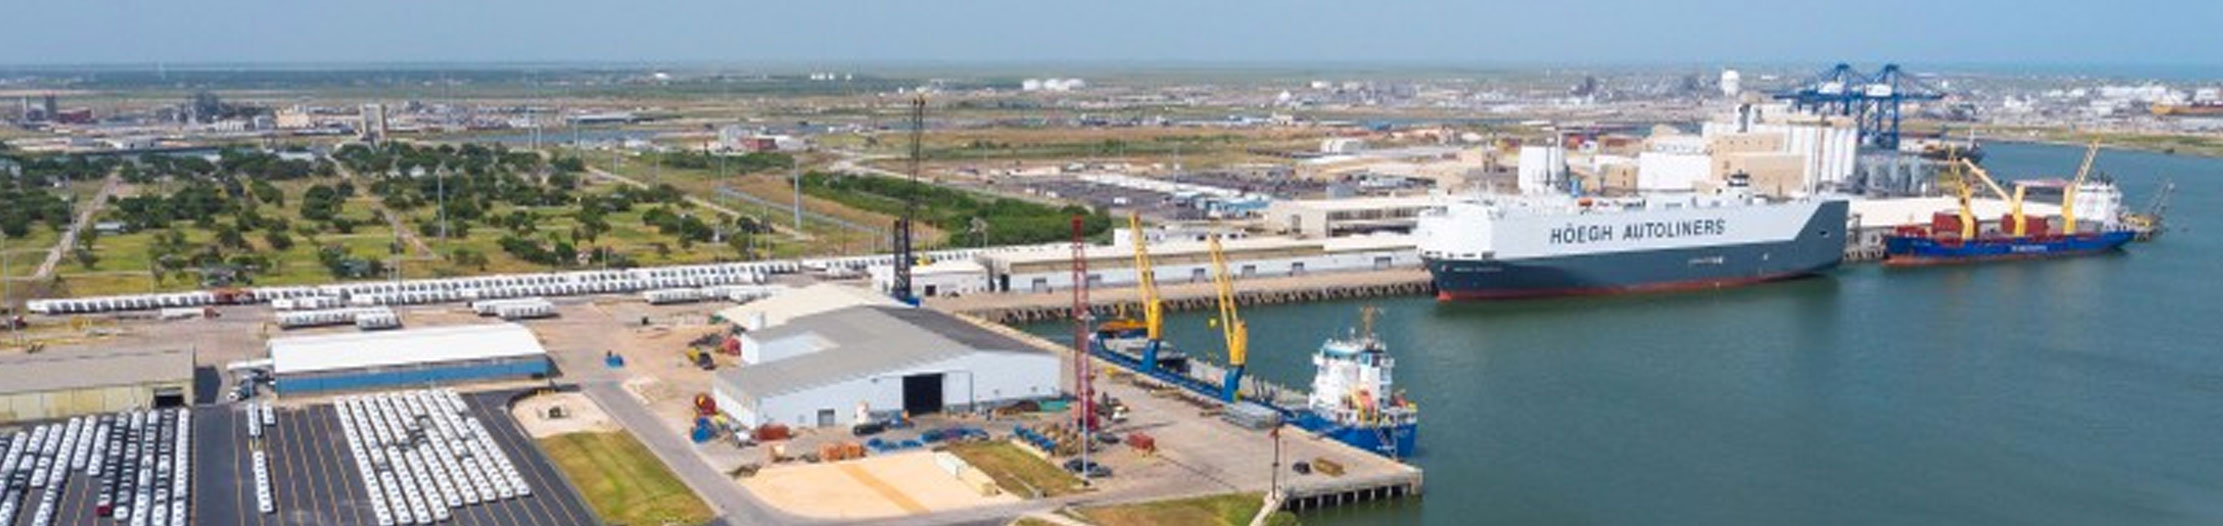 Port Freeport | Ports in Texas | Foreign Trade Zone